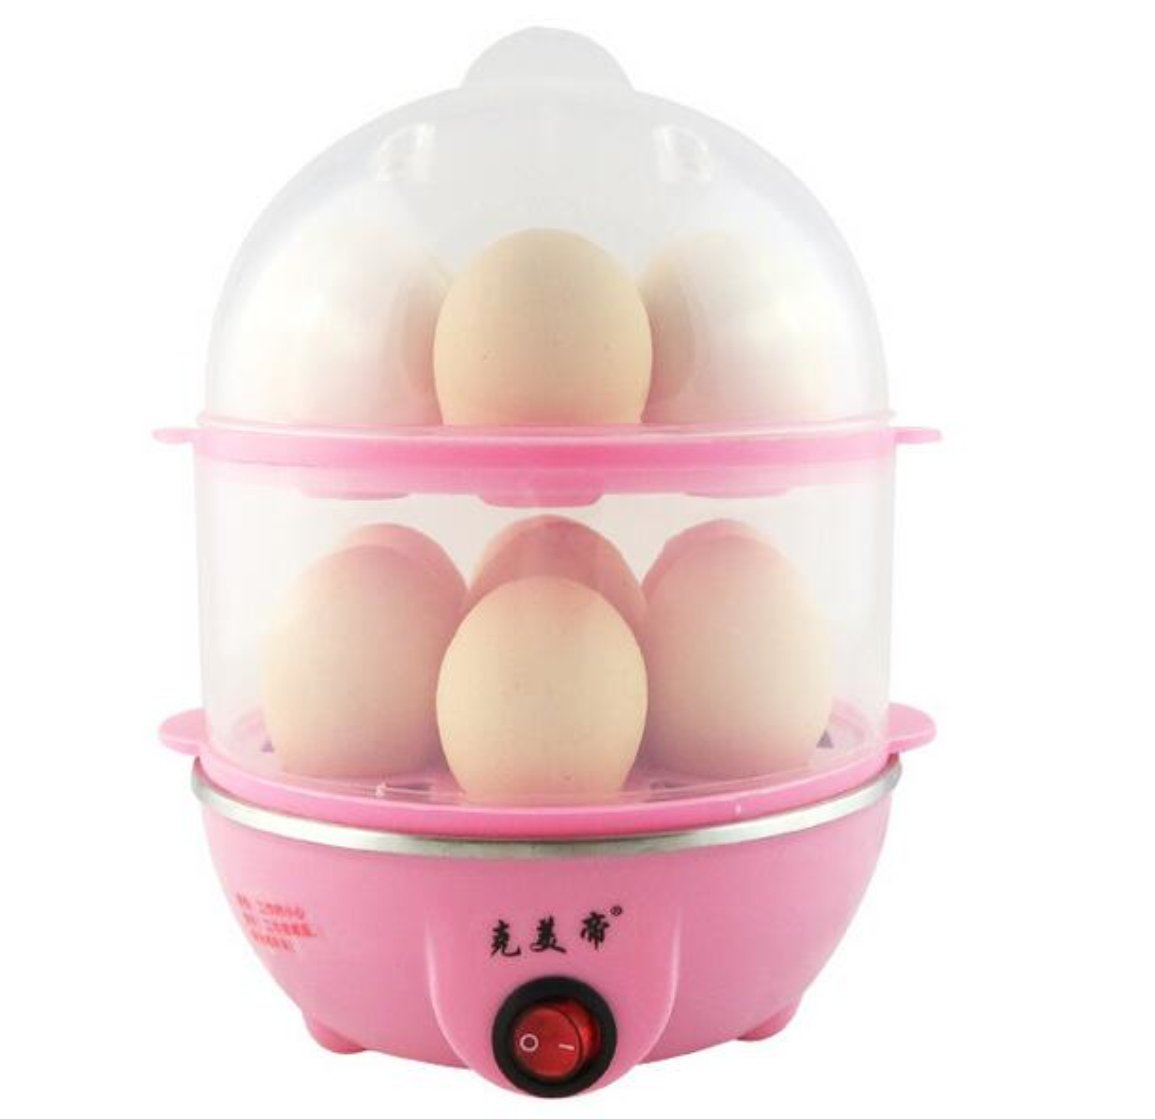 Multi-Function Electric 2 Layers Egg Cooker for Boiling Eggs, Steaming Food and More (Pink)